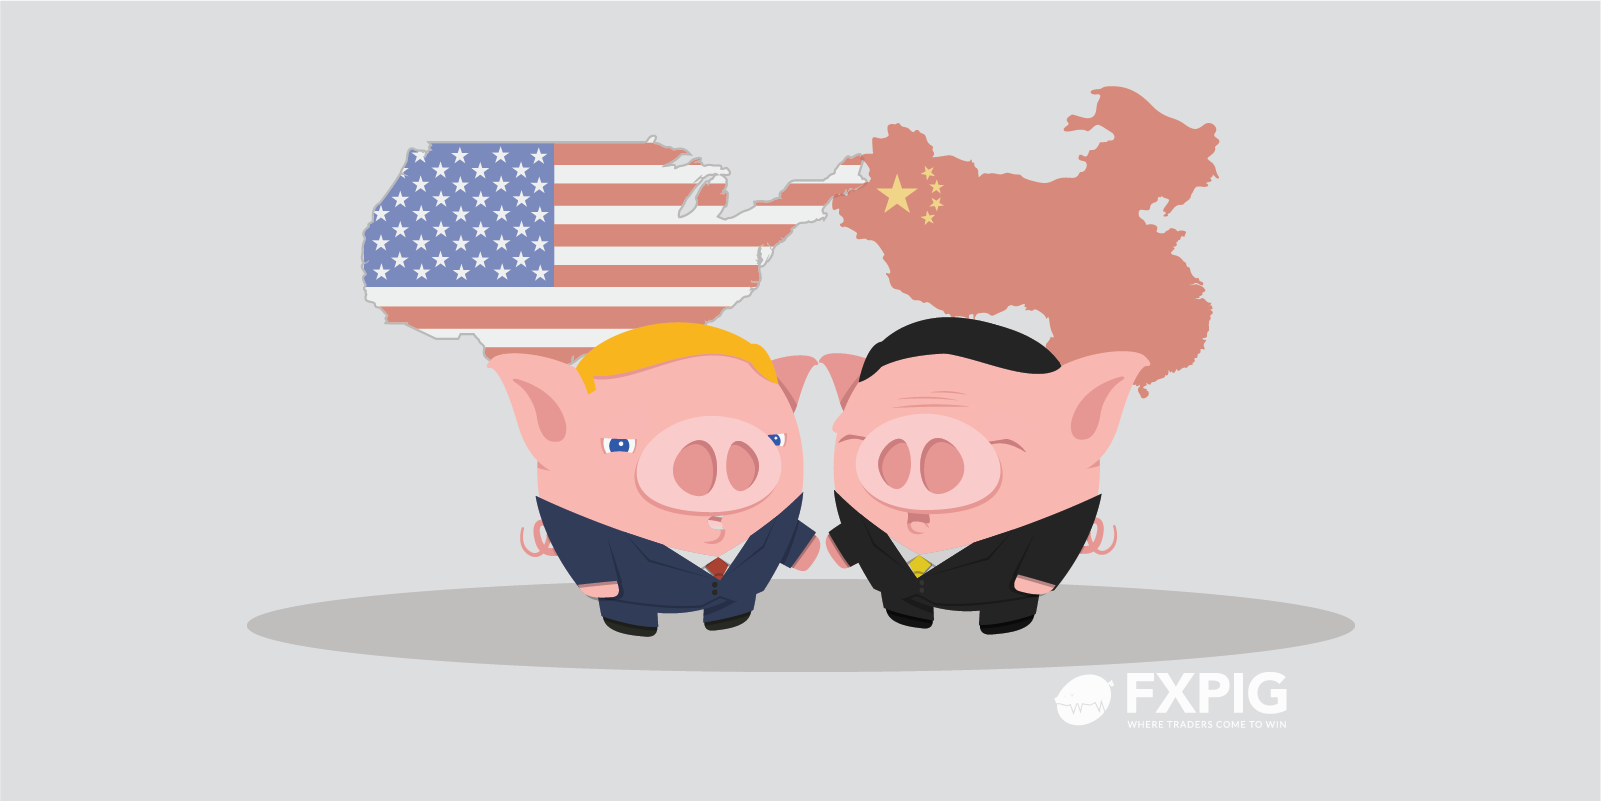 Forex_week_ahead_its-a-trade-deal_FXPIG